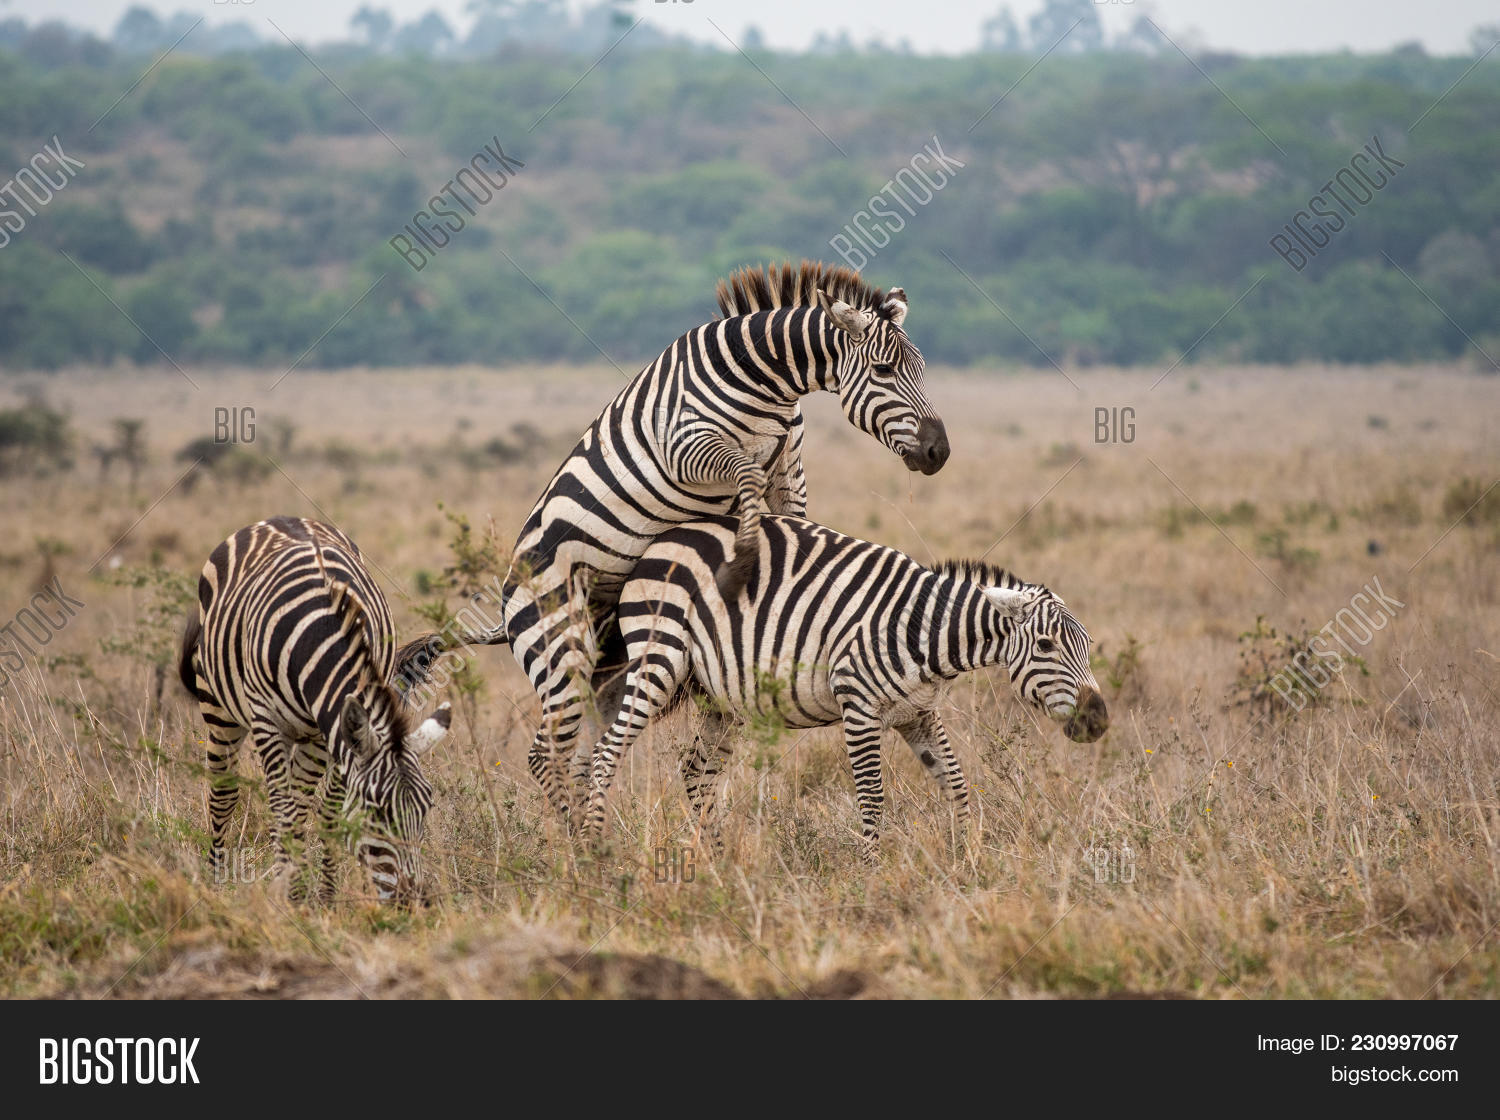 Two Zebras Mating Open Image Photo Free Trial Bigstock